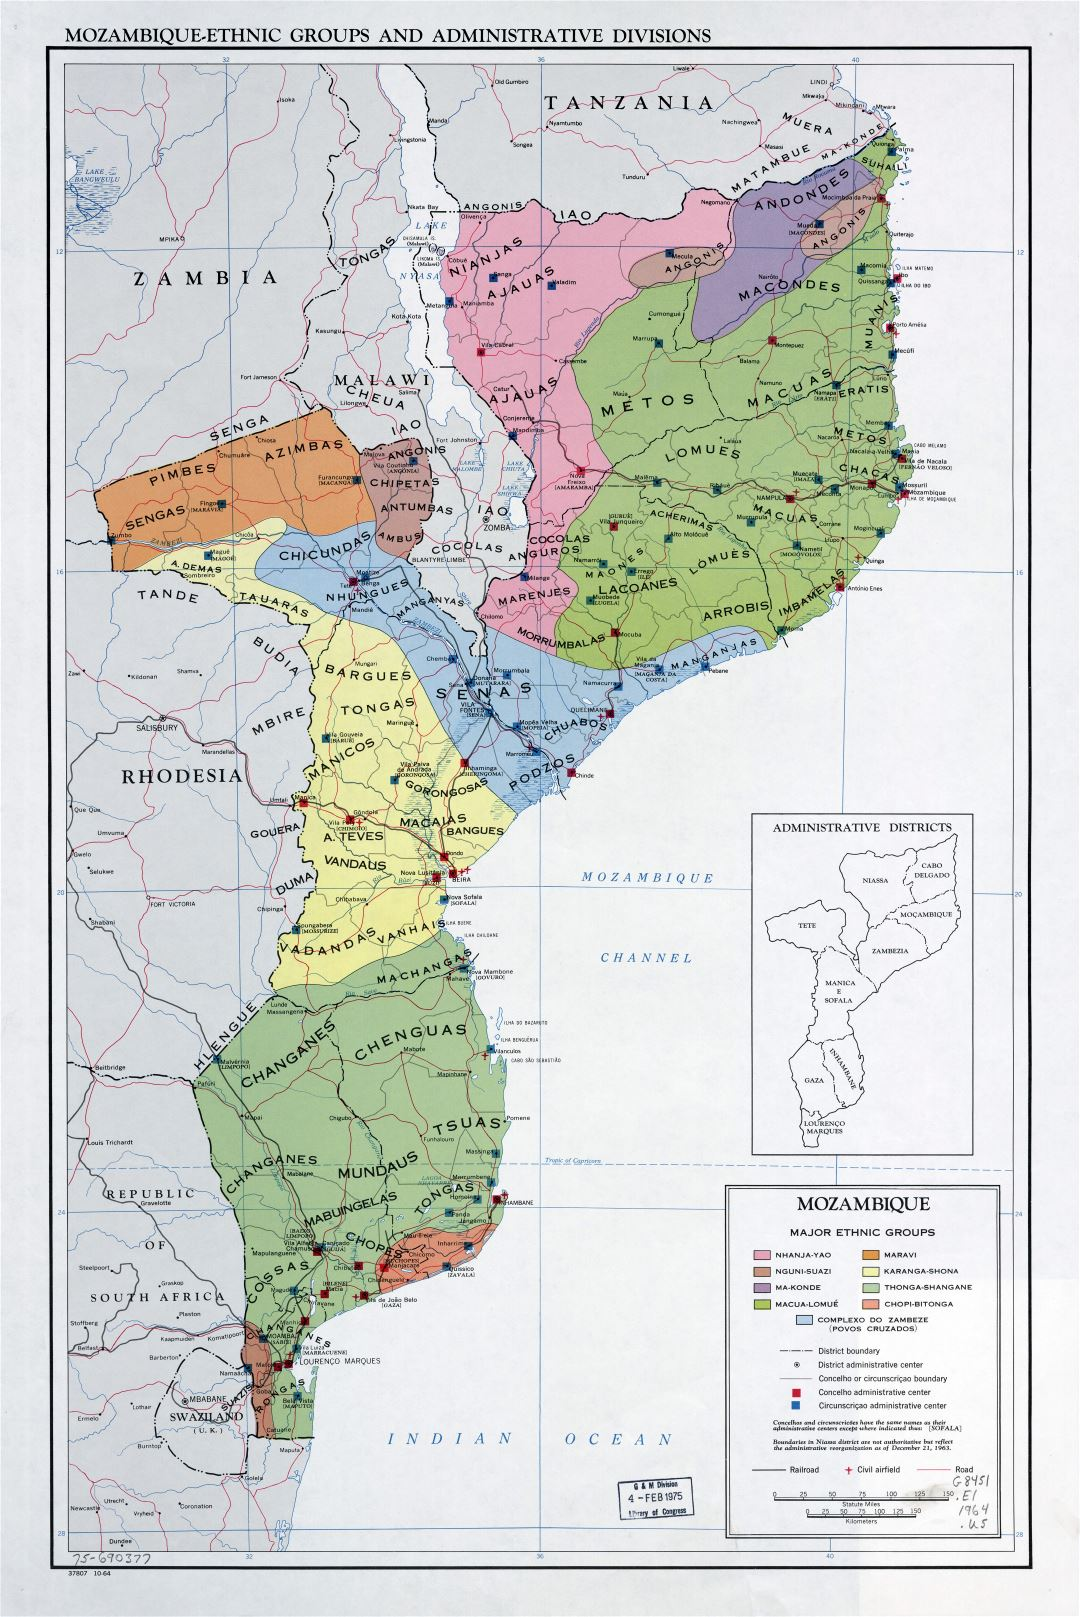 Large scale detailed map of Mozambique-Ethnic Groups and Administrative Divisions - 1964